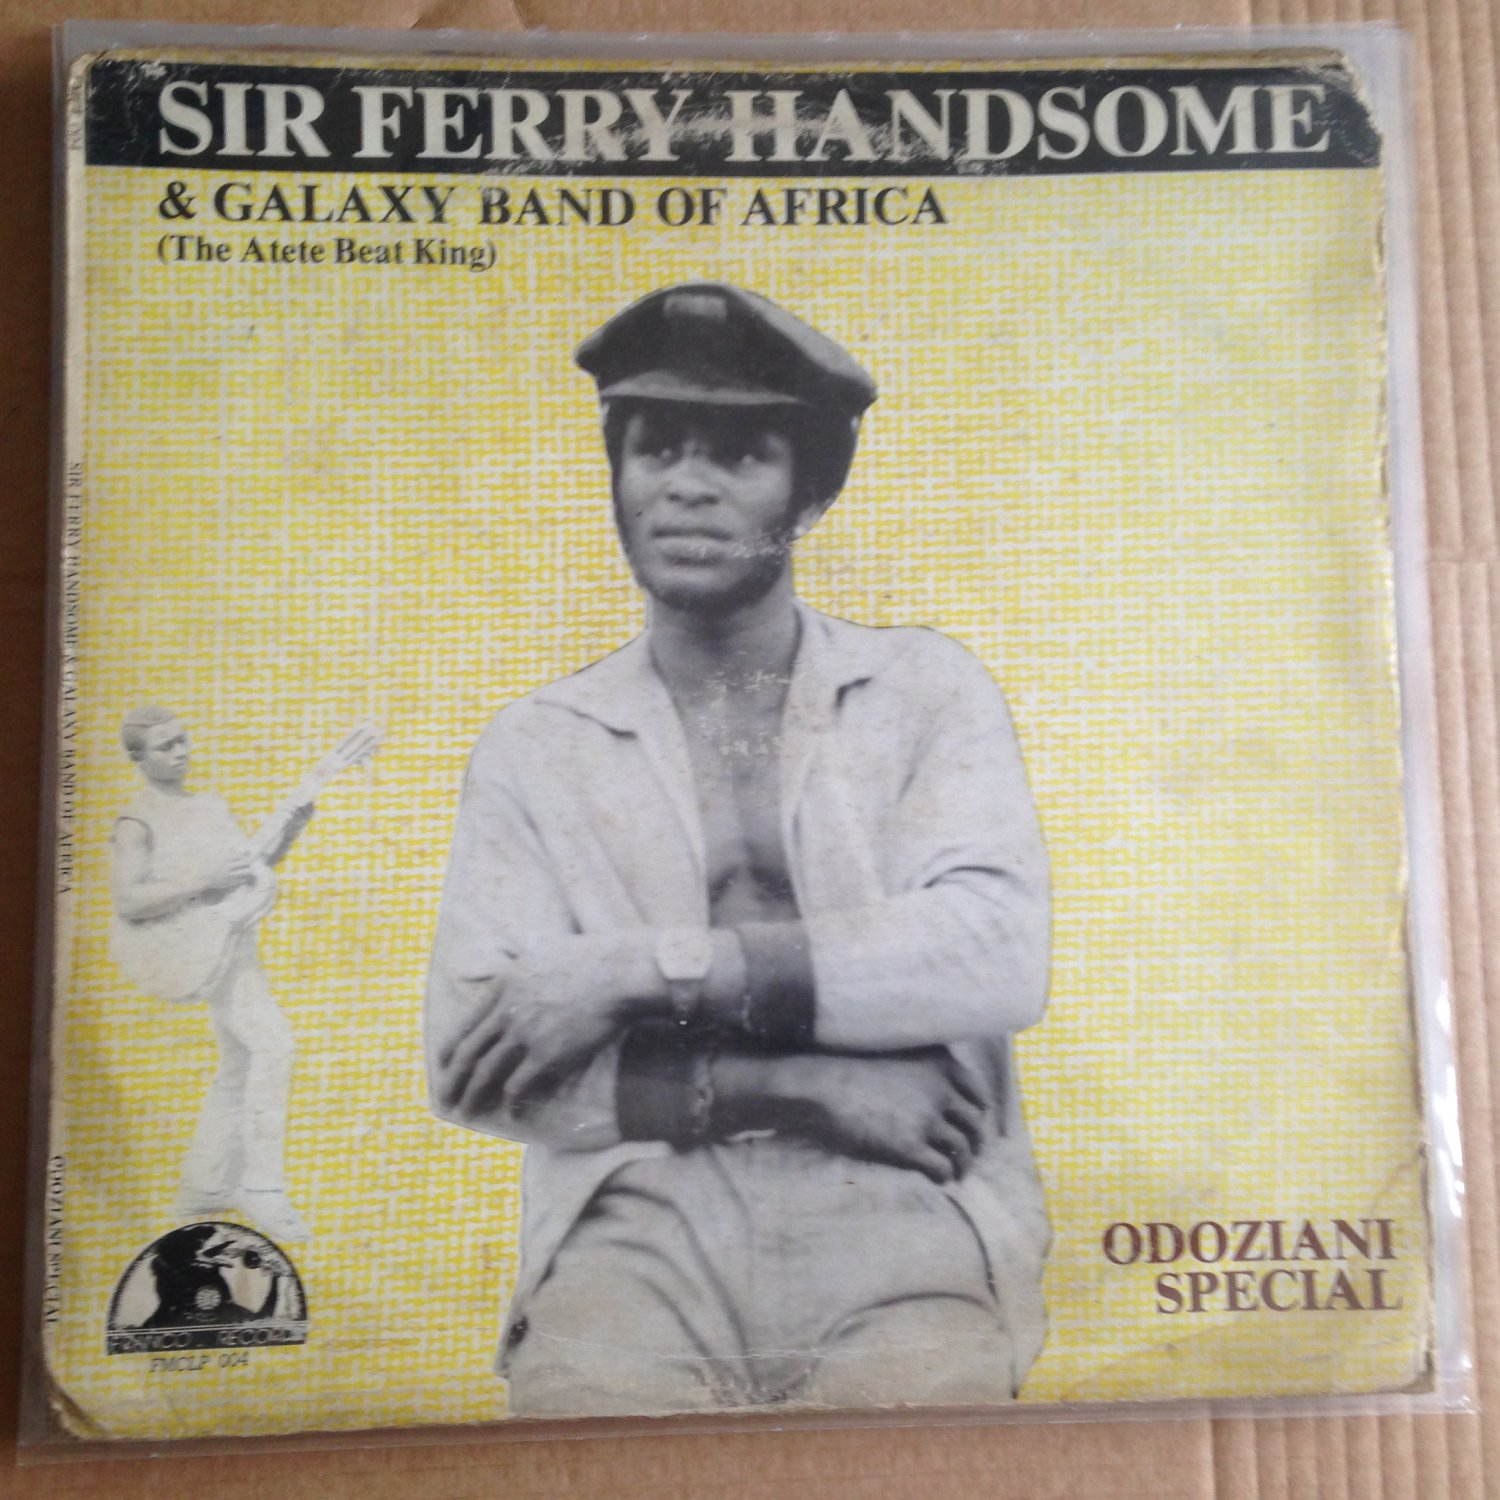 Show Boy Ferry Handsome And His Brothers International Band - Show Boy Ferry Handsome And His Brothers International Band